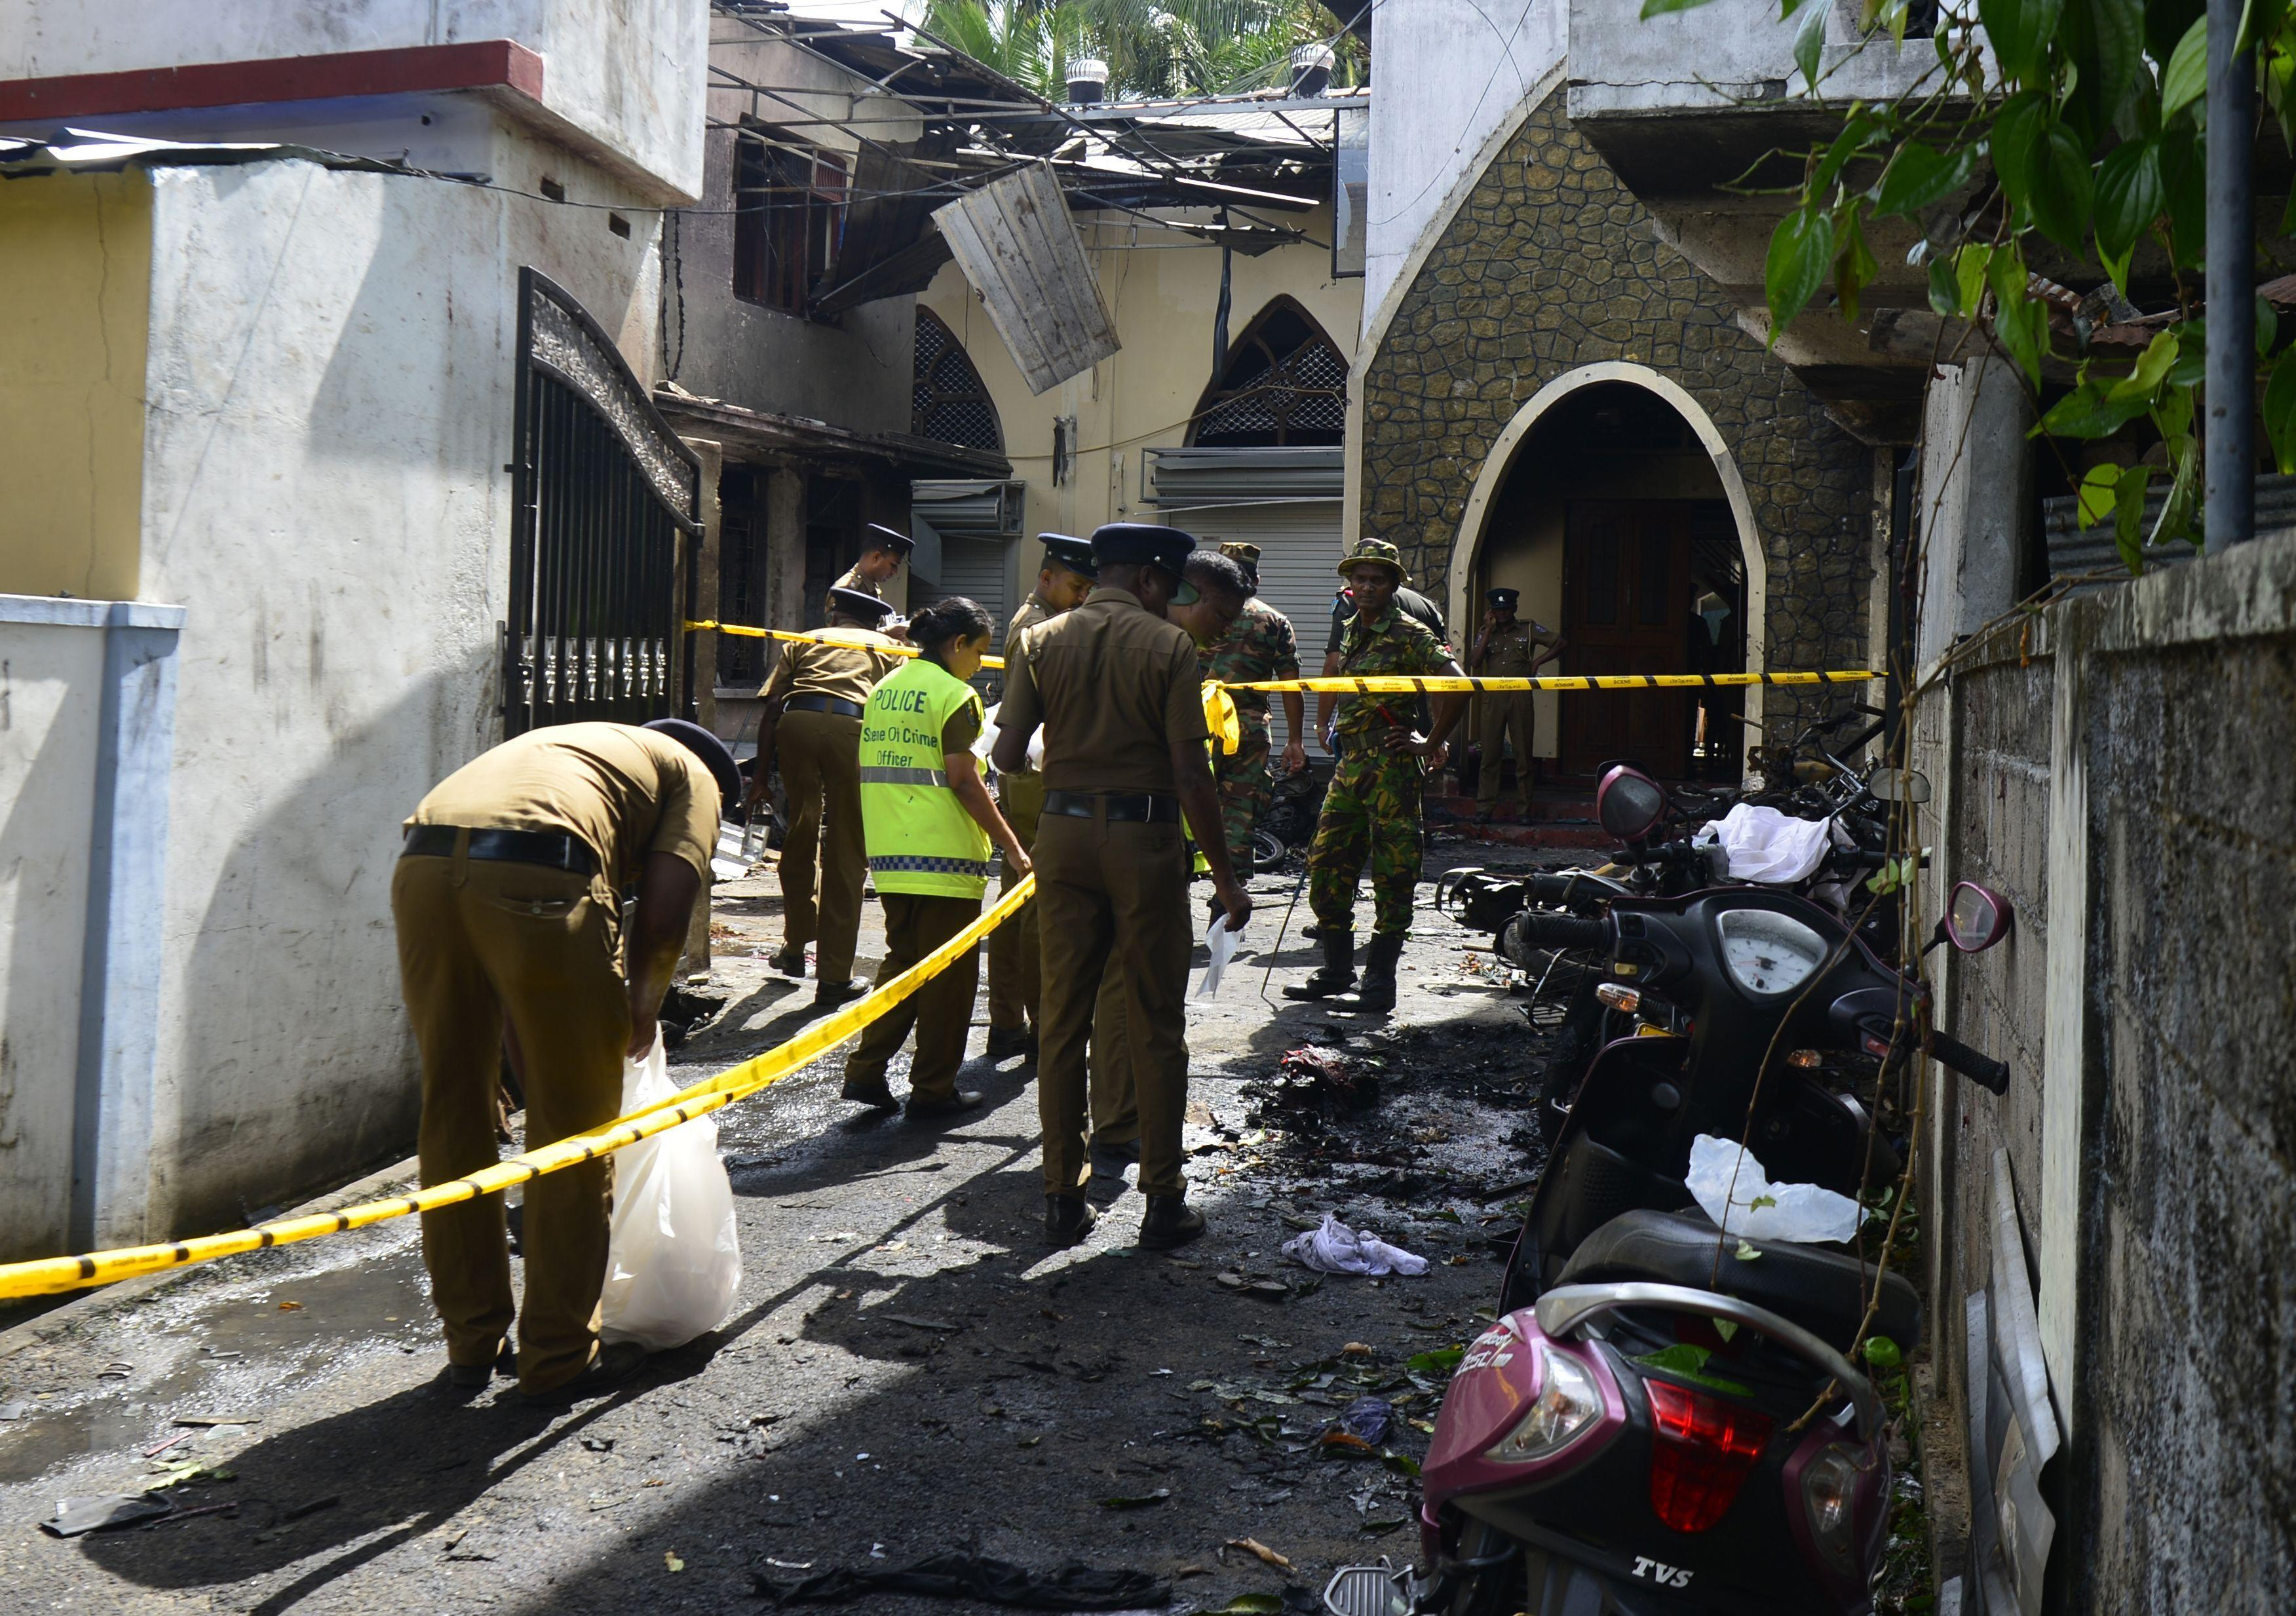 In expressing his condolences, Trump incorrectly said millions more had died in a deadly series of explosions in Sri Lanka